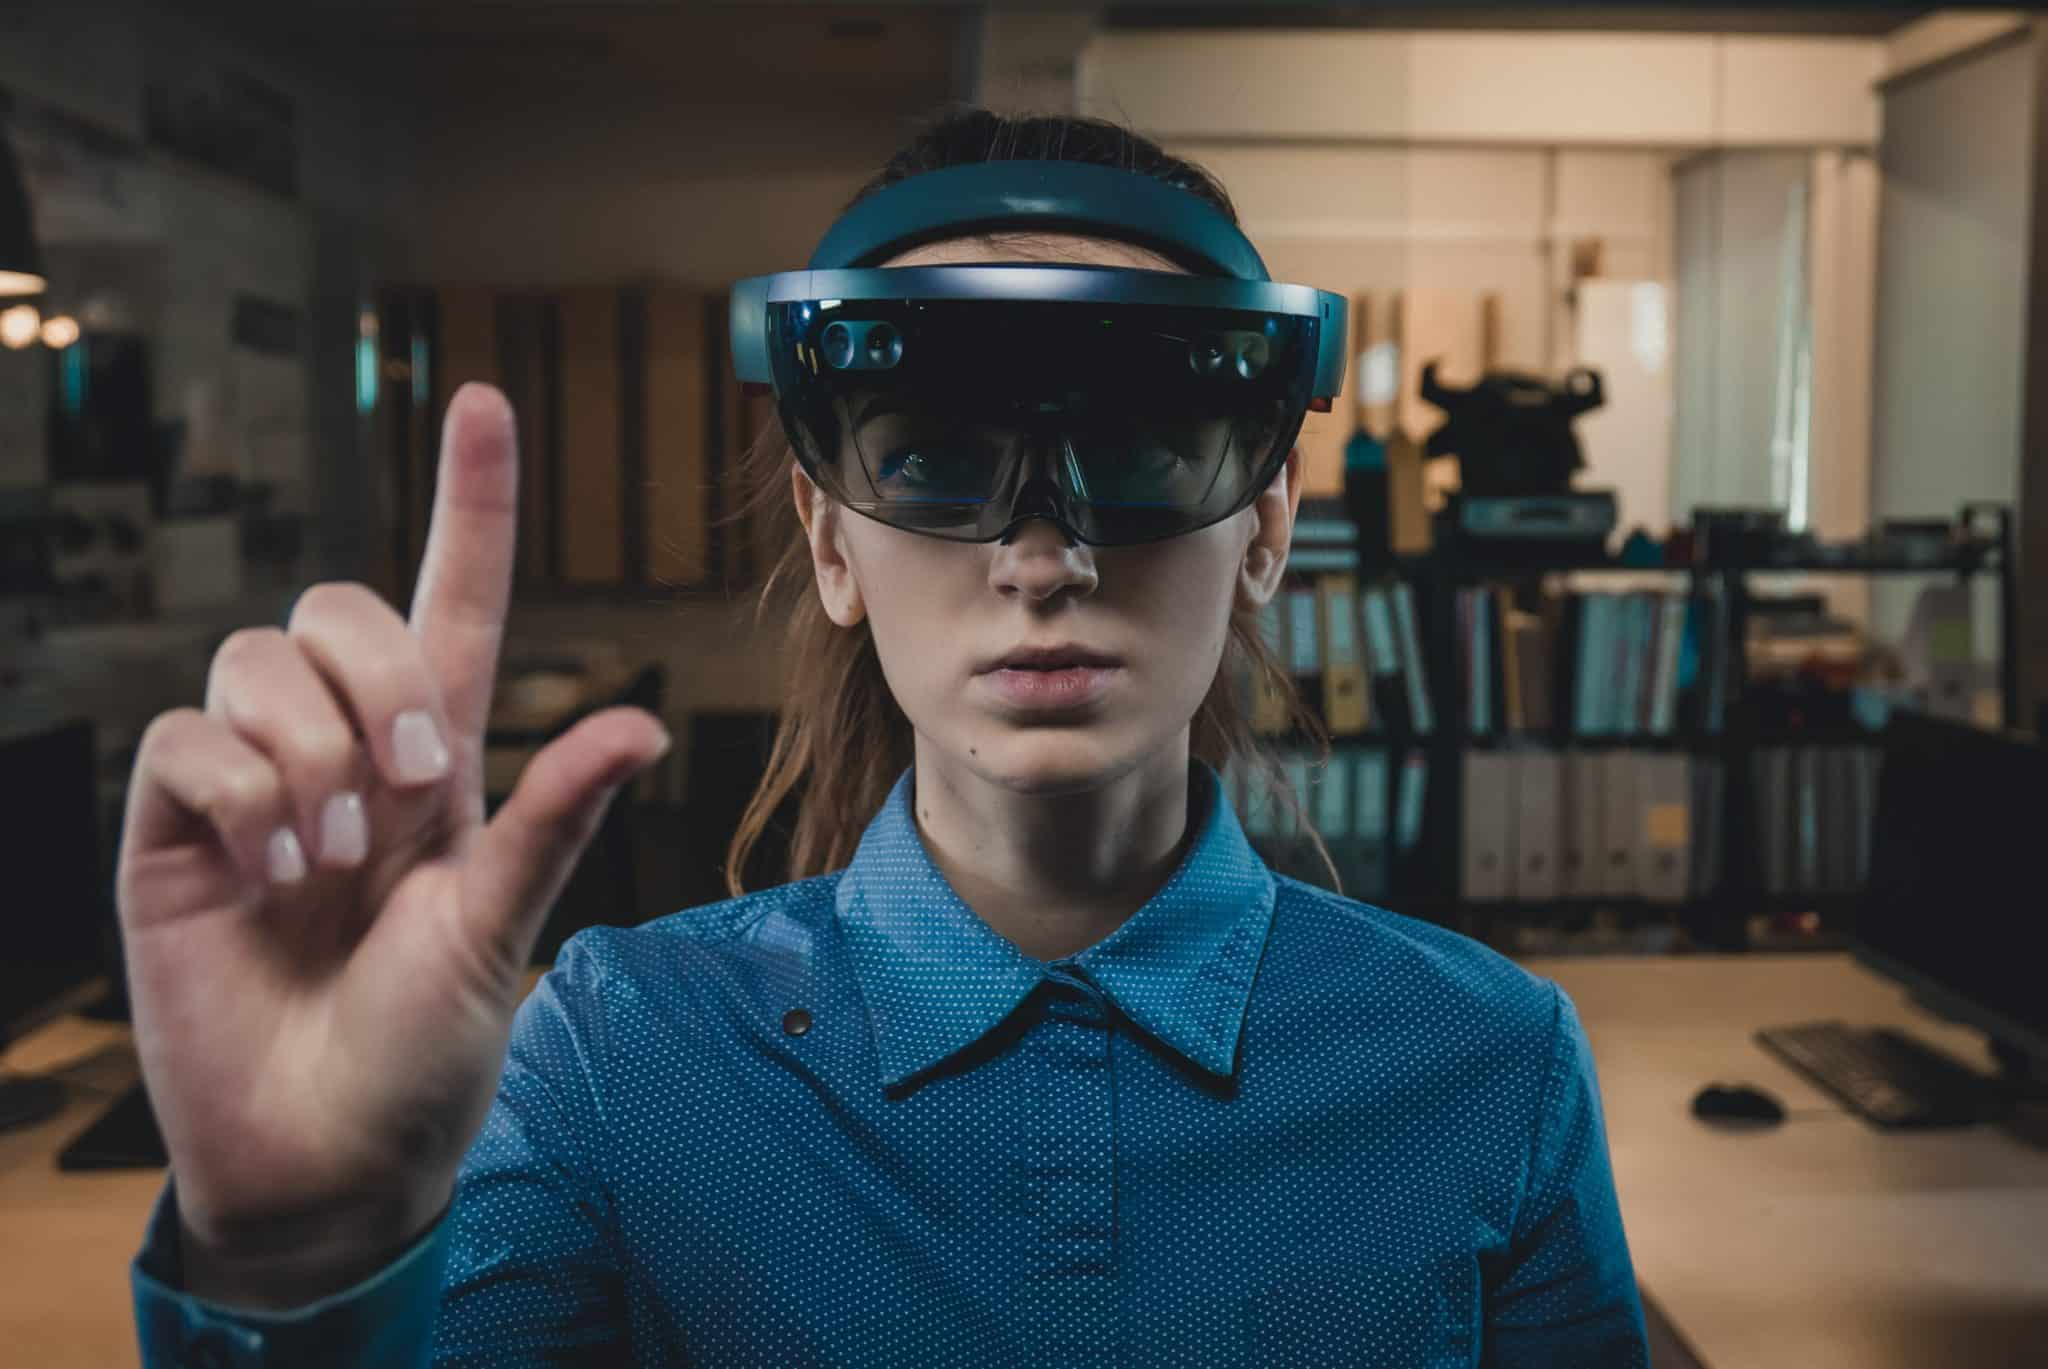 Hololens demos in Microsoft Stores